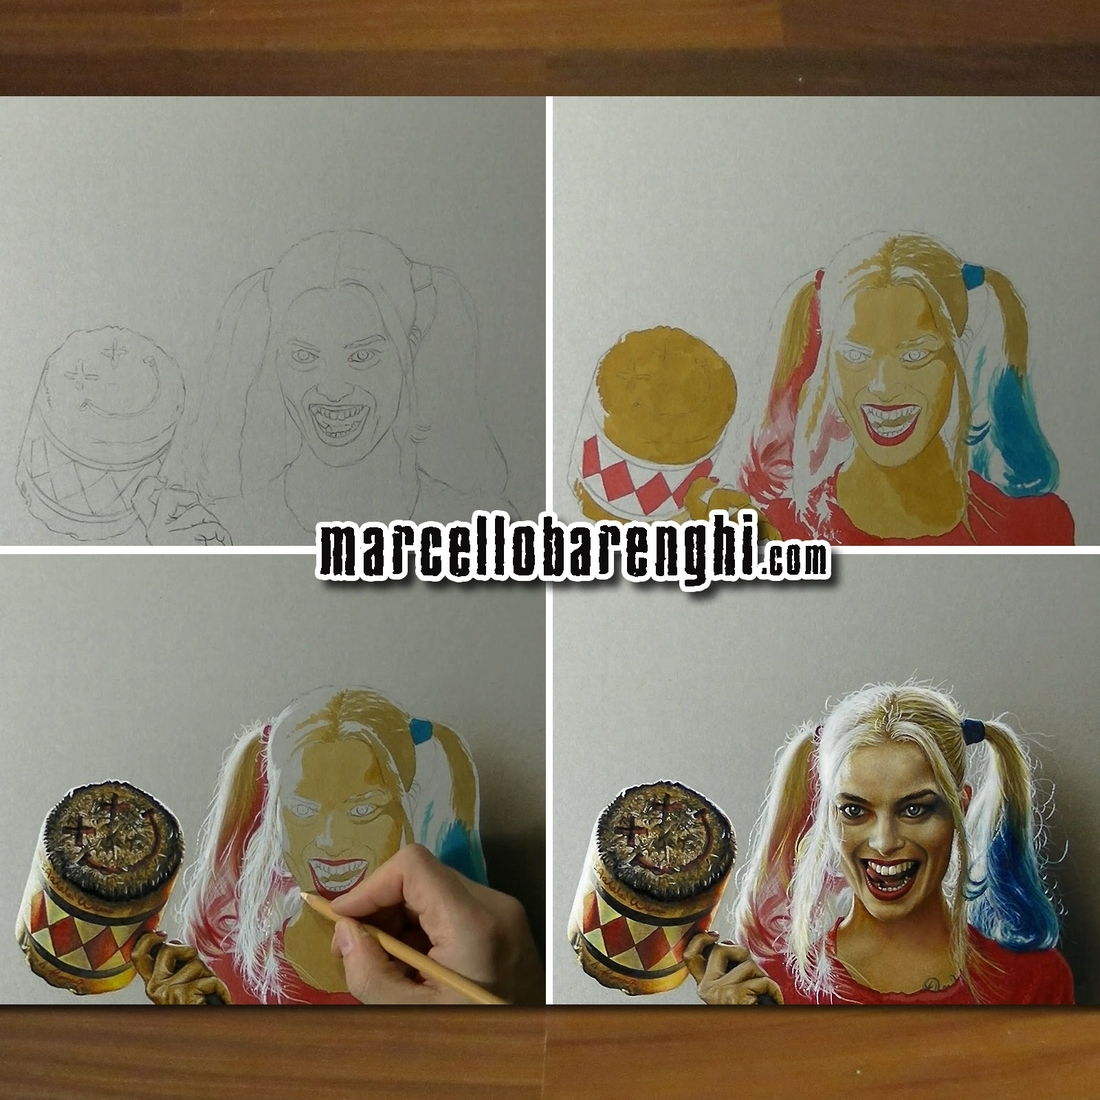 08-Harley-Quinn-Suicide-Squad-wip-Marcello-Barenghi-Exploring-Tiny-Details-of-Hyper-Realistic-Drawings-www-designstack-co